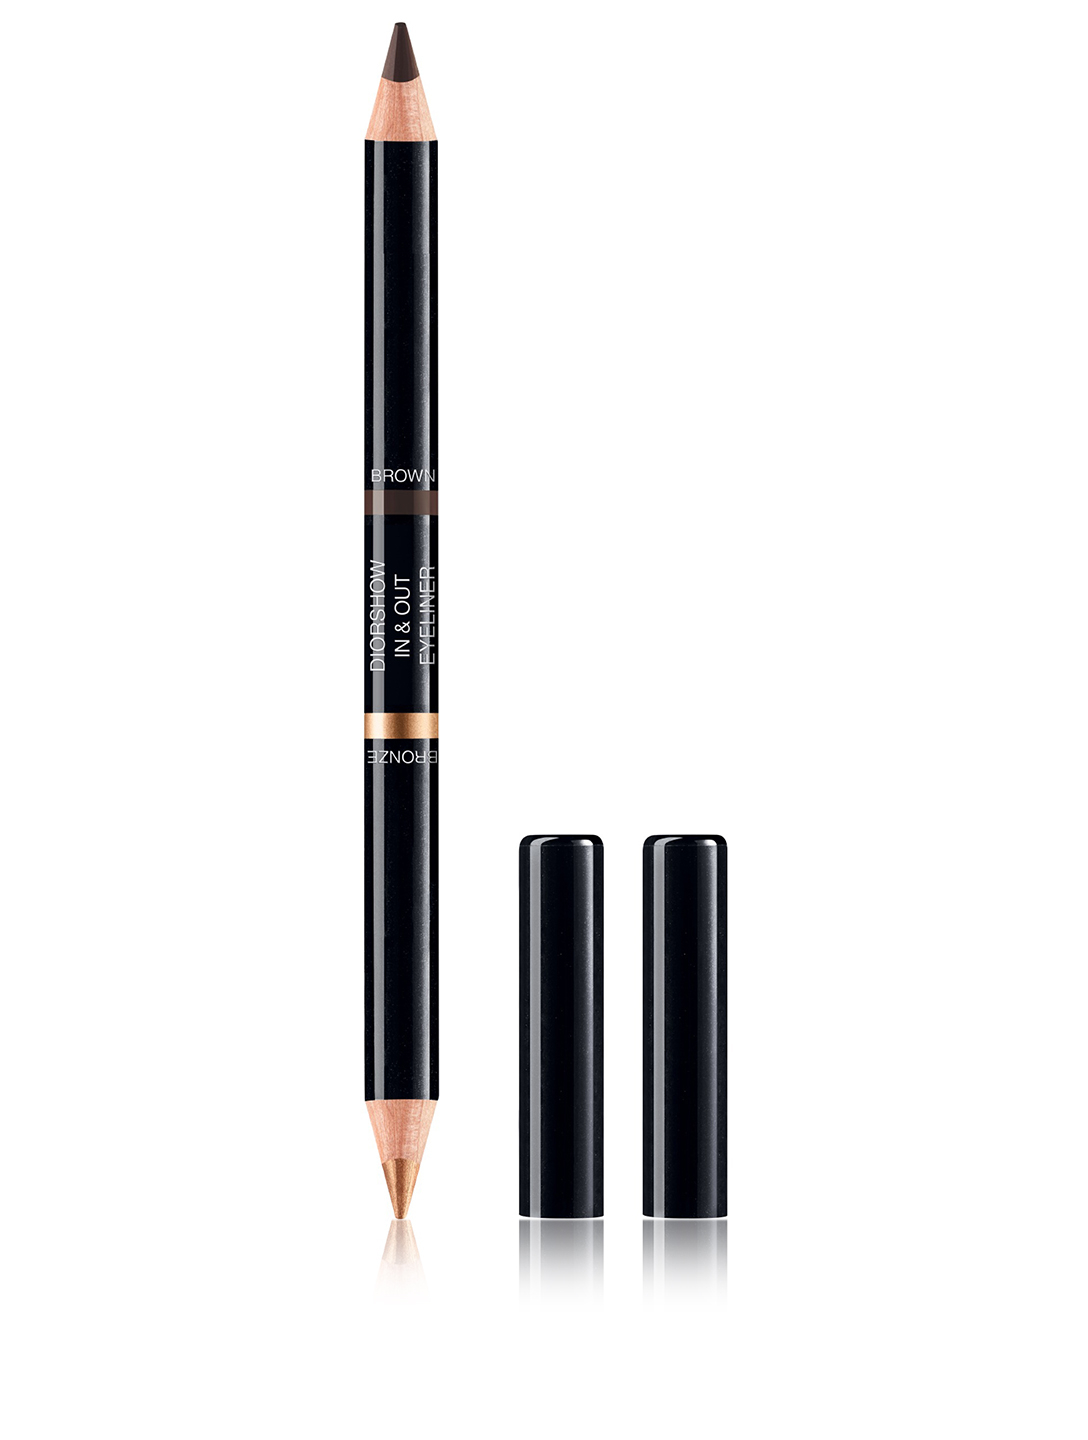 DIOR Diorshow In & Out Eyeliner Waterproof - Limited Edition Beauty Bronze